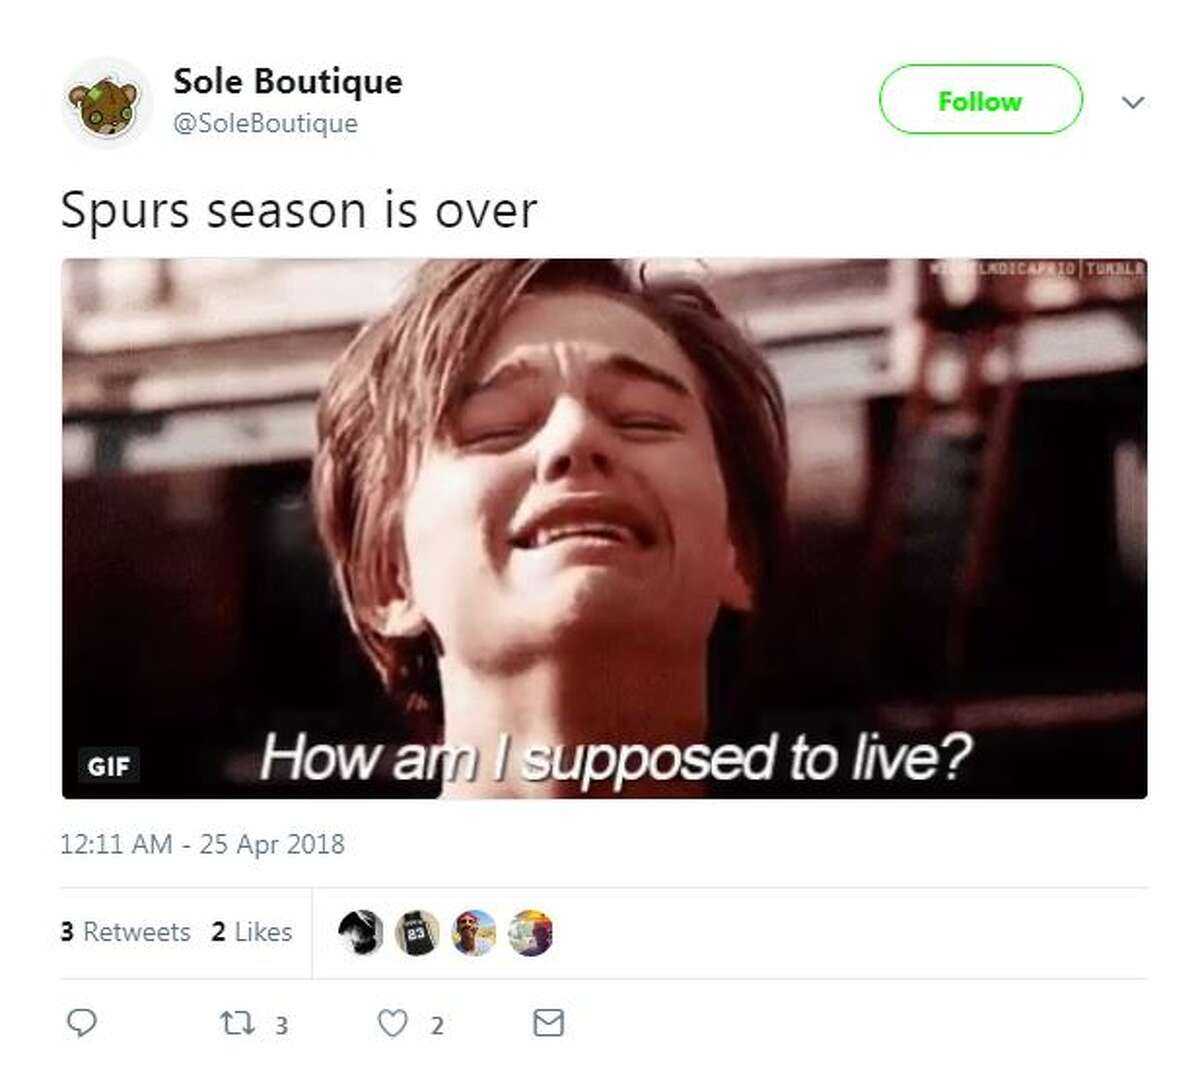 Spurs fans reacted on Twitter after Spurs fall to Warriors in game 5.